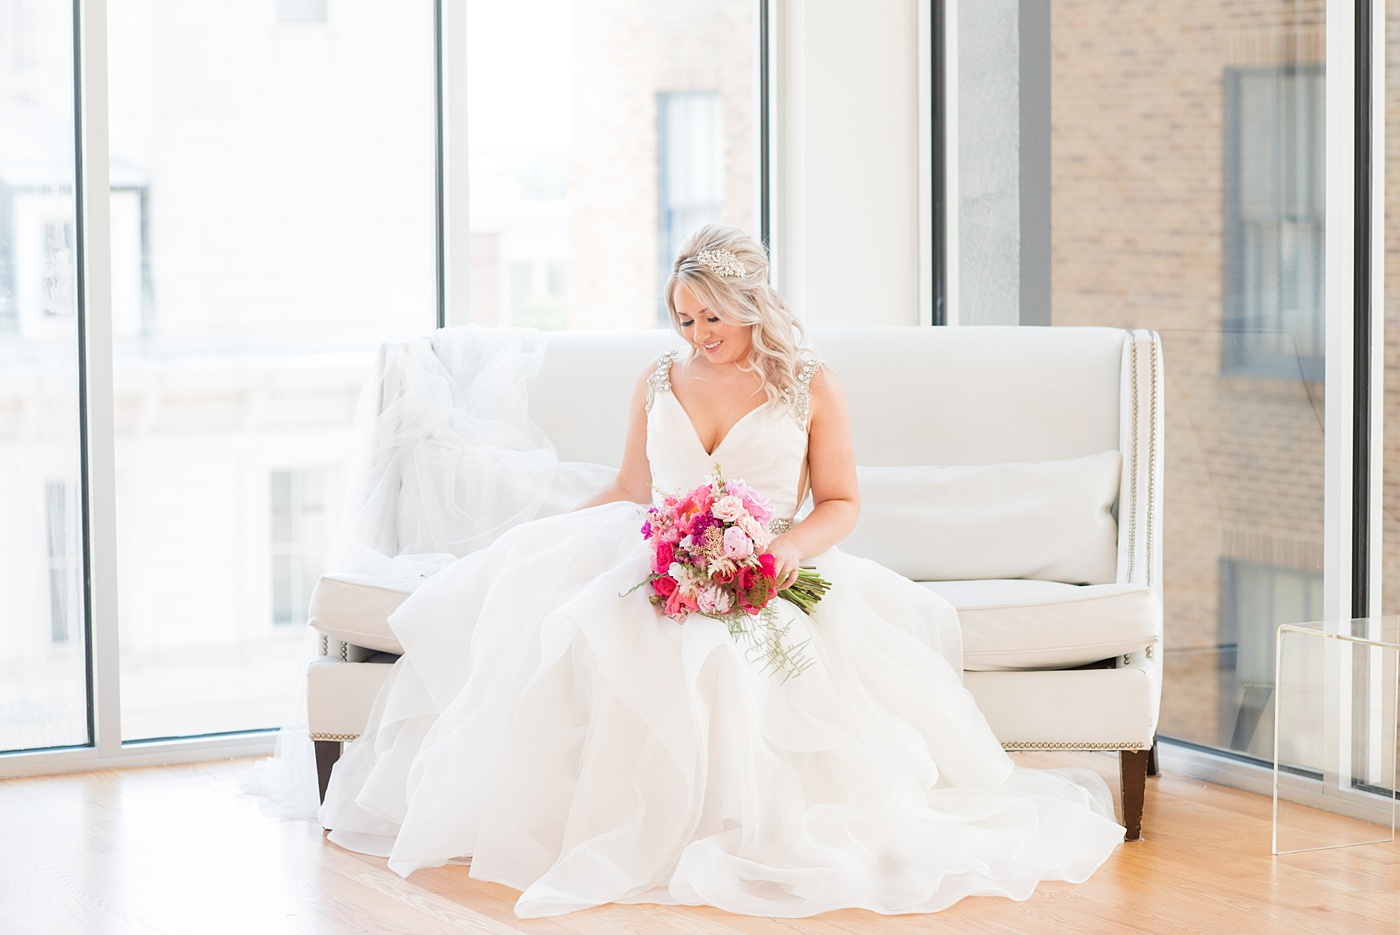 A beautiful spring wedding in Raleigh, North Carolina, at the event venue, The Stockroom at 230 and The Glass Box. Pictures of the bride getting ready with her yorkie dog by their photographer, Mikkel Paige Photography. Their hot pink and aqua colors were perfect for May as the bridesmaids celebrated with a champagne toast in floral robes. #MikkelPaige #DowntownRaleigh #RaleighWedding #RaleighVenue #TheStockroomat230 #bridesmaidsrobes #weddinggettingready